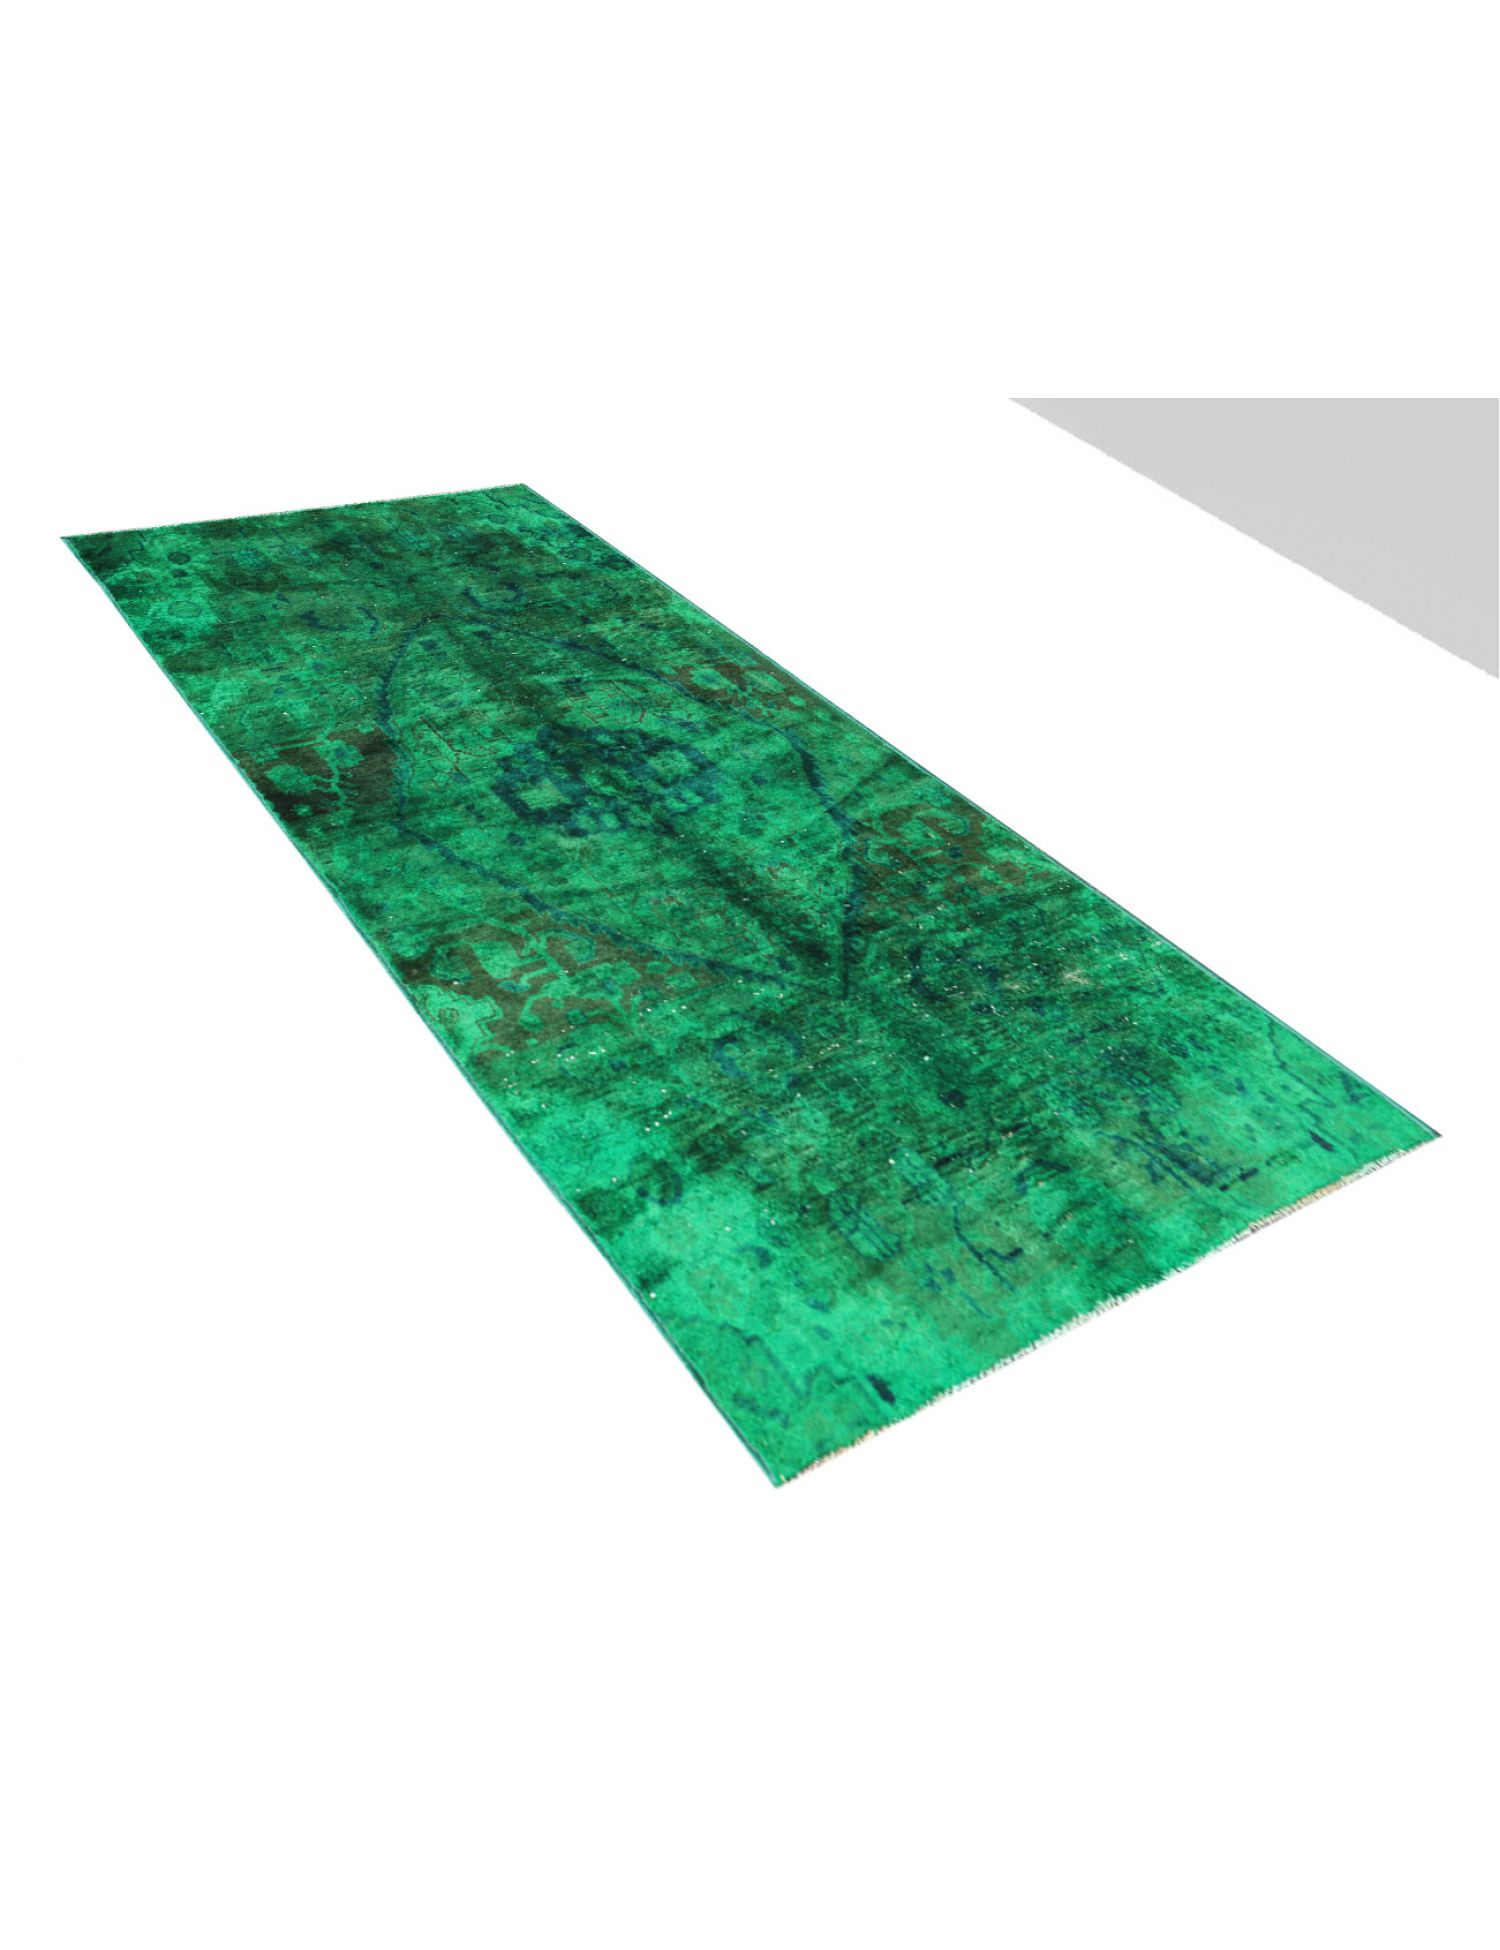 Vintage Carpet  green <br/>236 x 110 cm